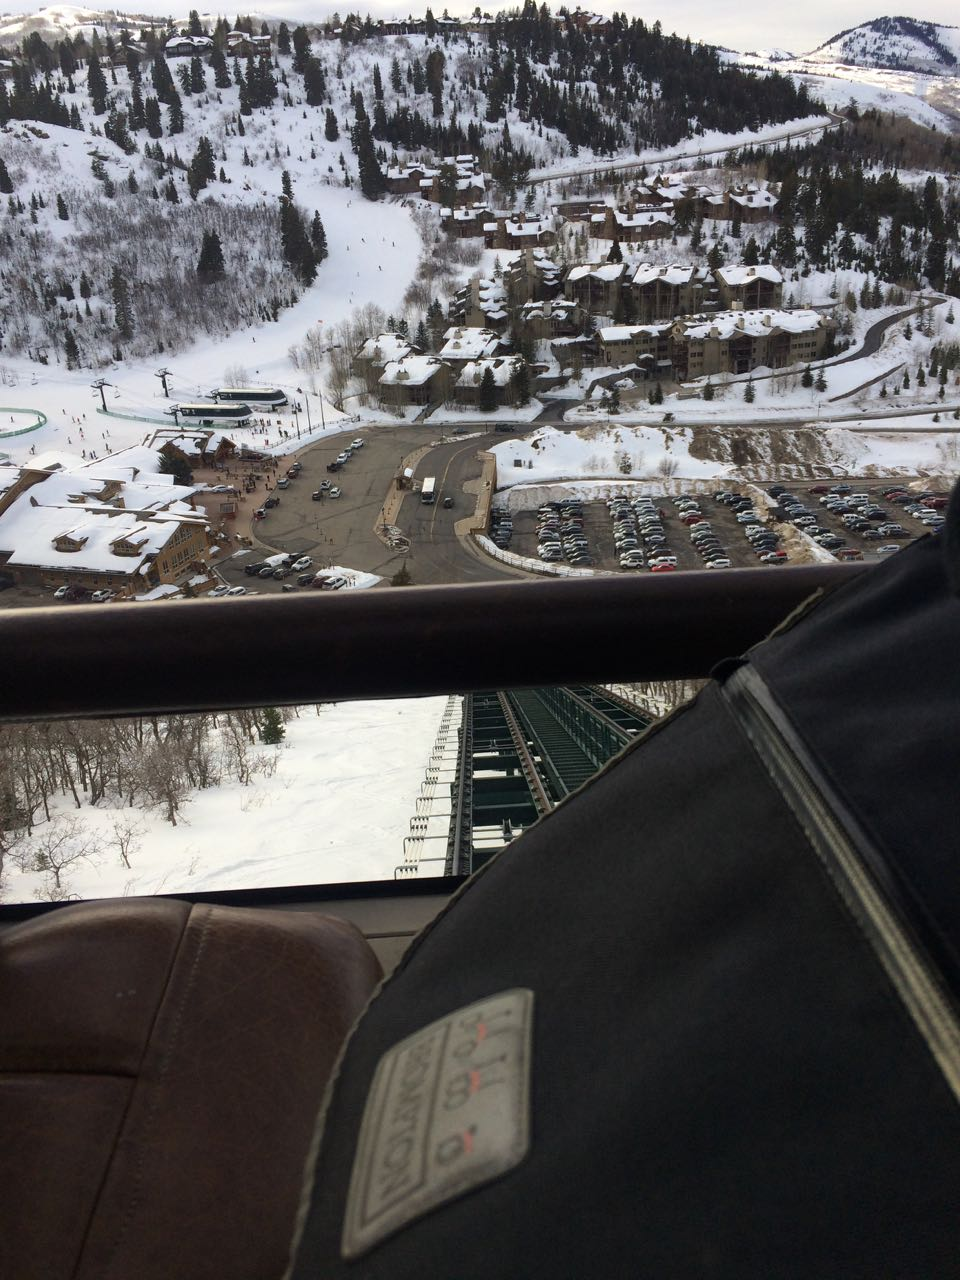 It's a funicular! - Deer Valley resort, Park City, Utah